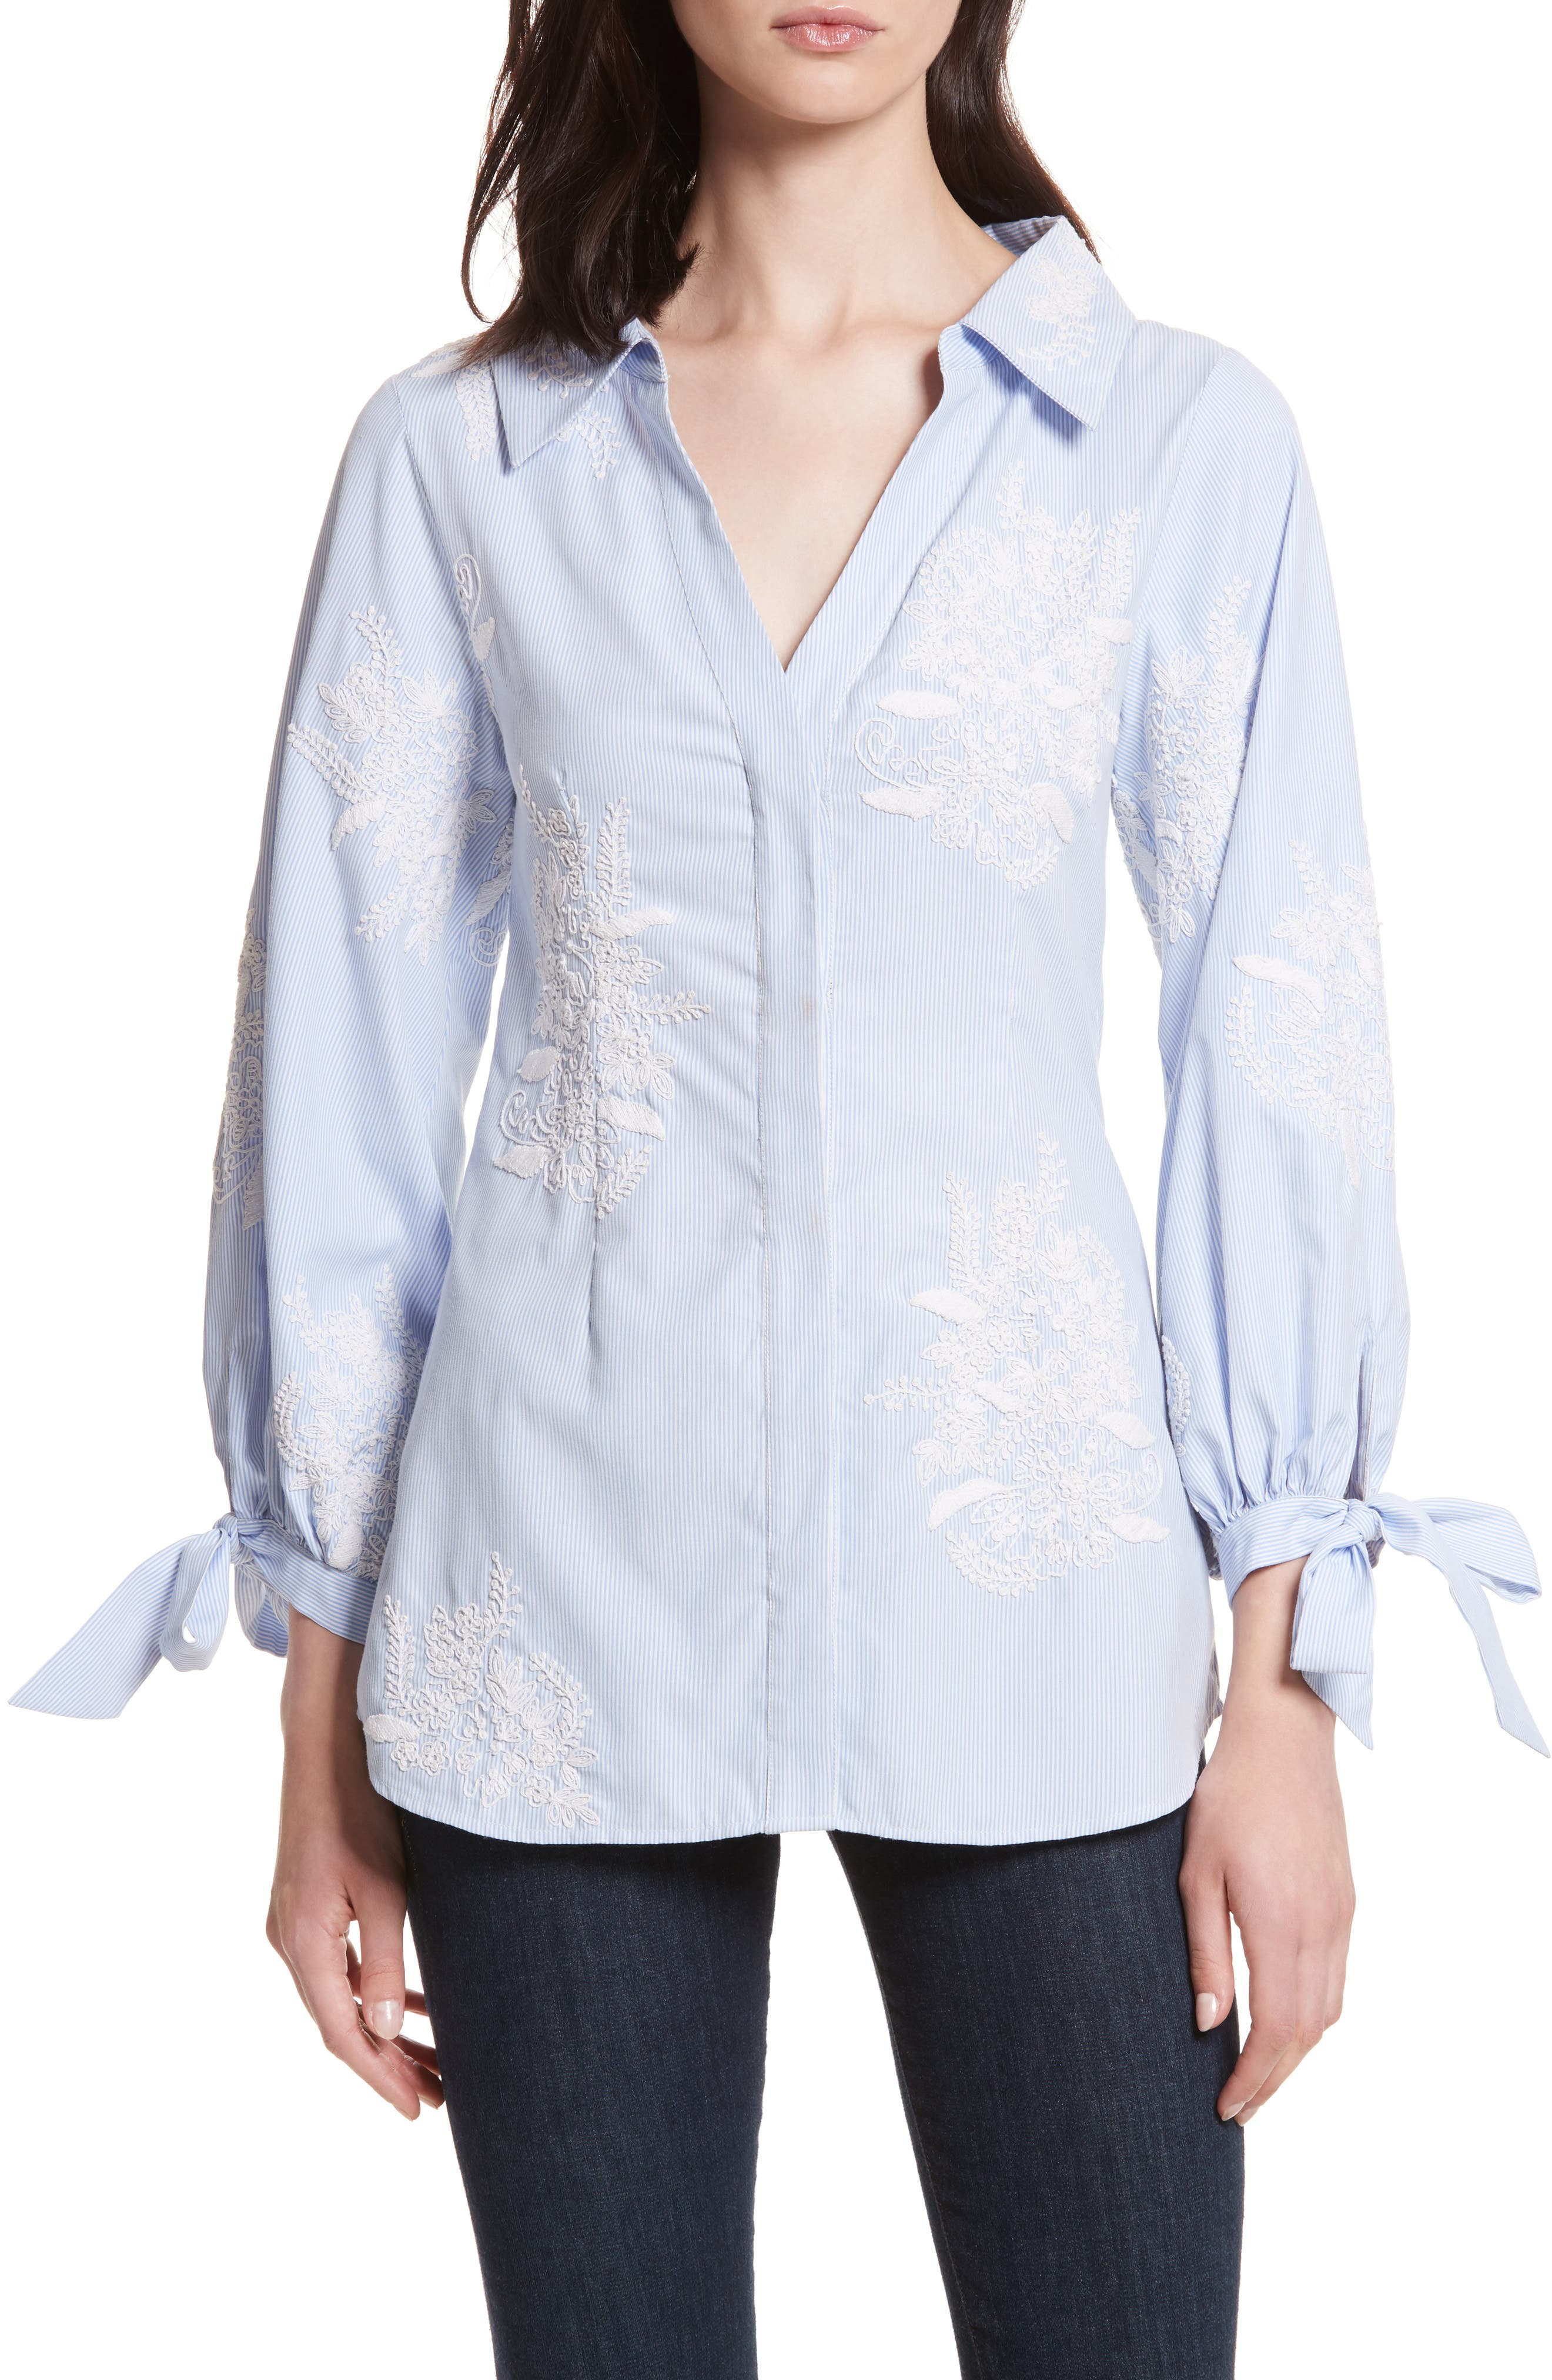 Toro Embroidered Tie Sleeve Blouse,                         Main,                         color, Blue/ White